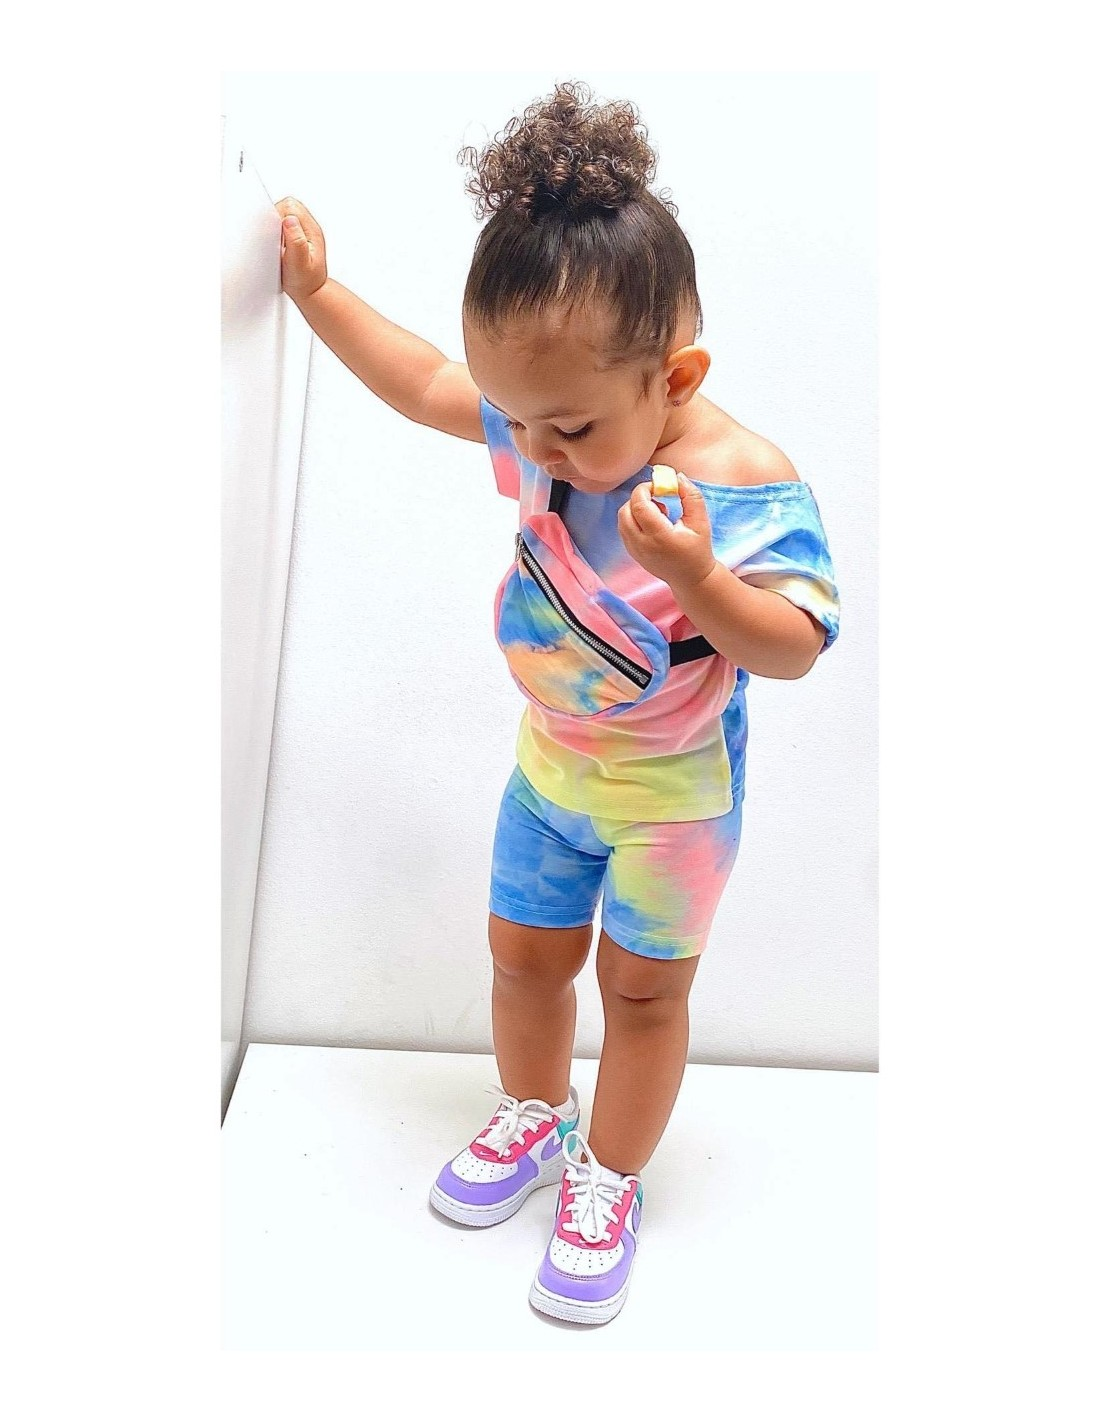 ENSEMBLE TOP SHORT 043 COLORS BÉBÉ FILLE 6 AU 36 MOIS fashion mode ZERDA BOUTIQUE mode pas cher